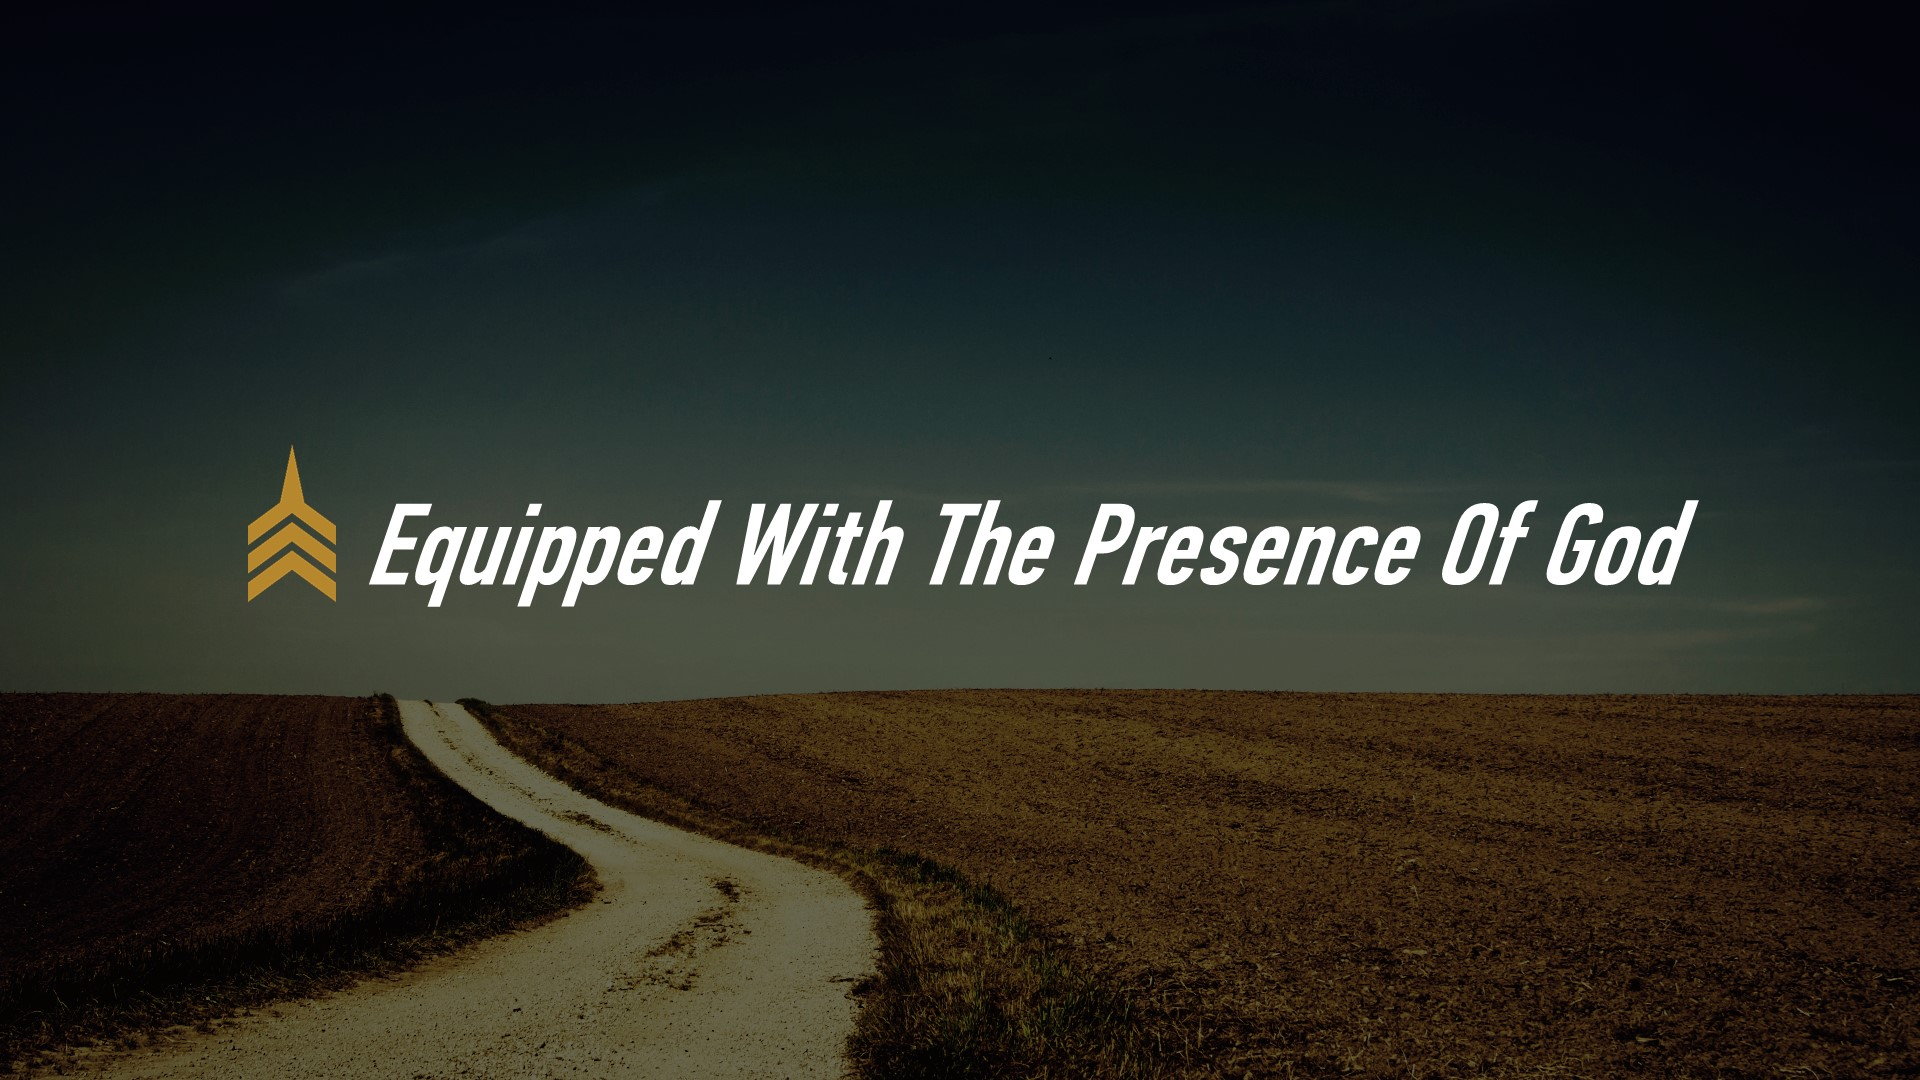 20181028 Equipped With The Presence Of God.JPG